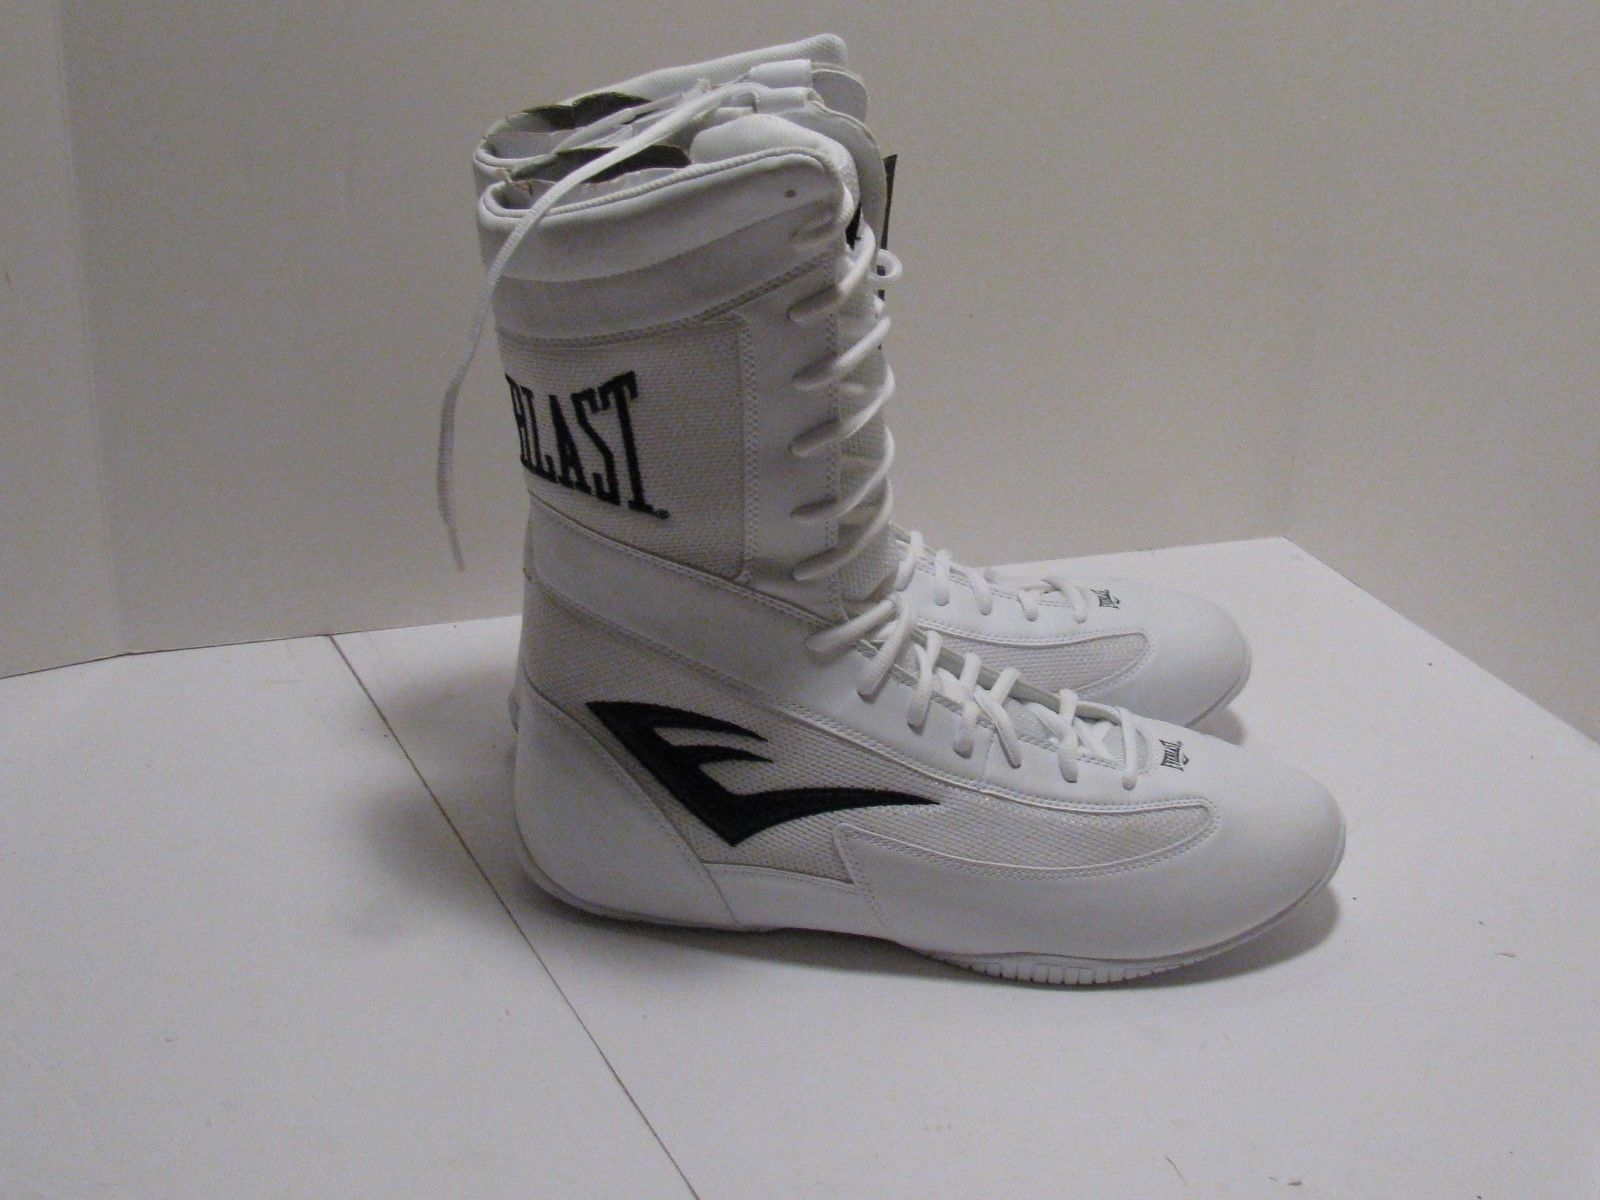 hot sale online 22b45 27f58 Everlast Michelin Hydrolast Lockdown Hi-Top Men s Boxing Shoes - White Size  16 in Sporting Goods, Boxing, Martial Arts   MMA, Clothing, Shoes    Accessories, ...